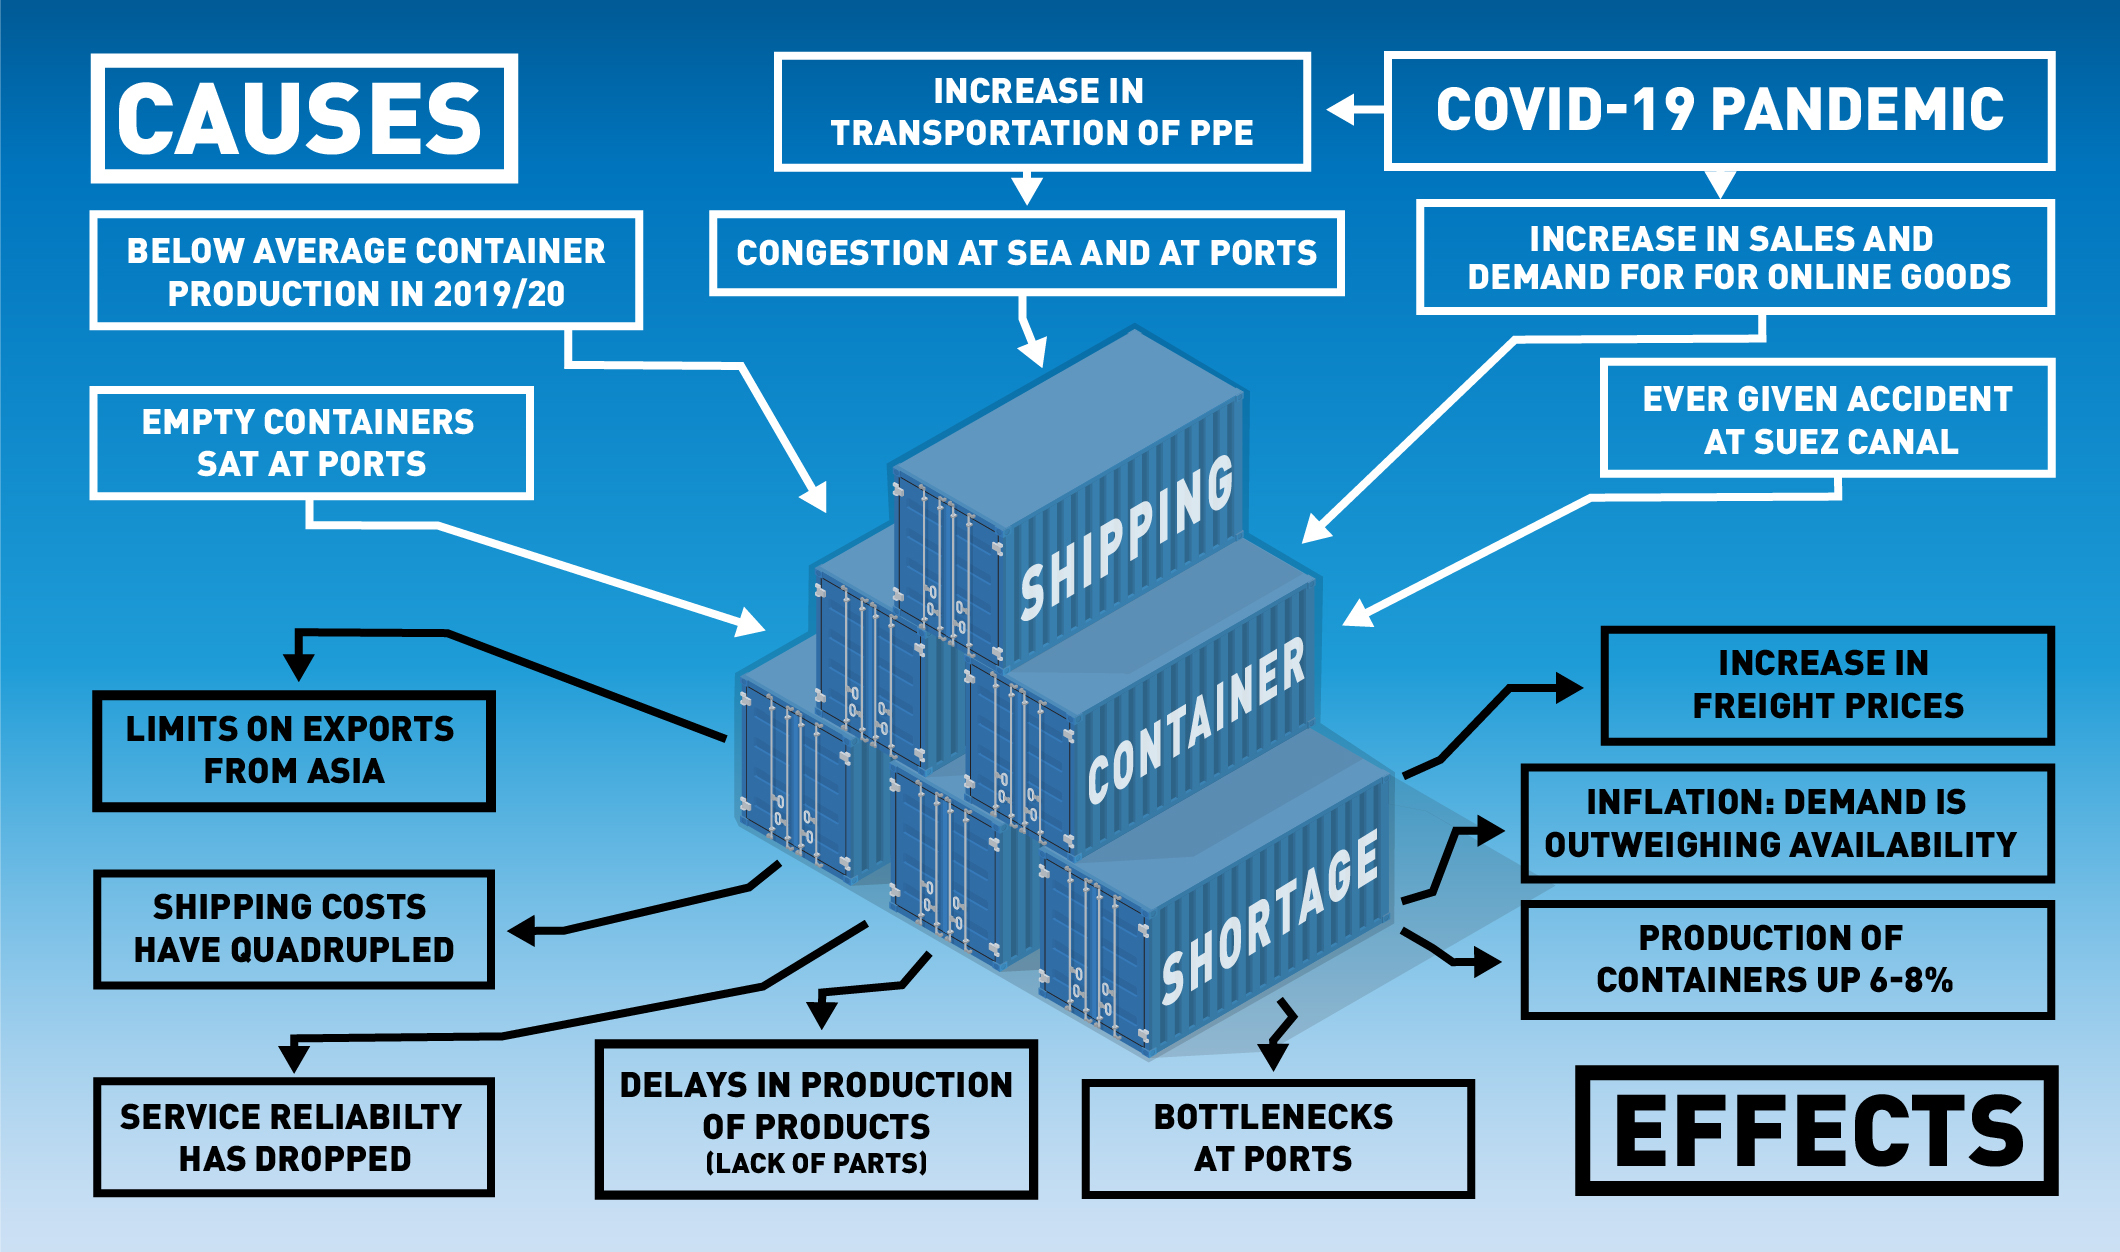 Causes and effects of shipping container shortage